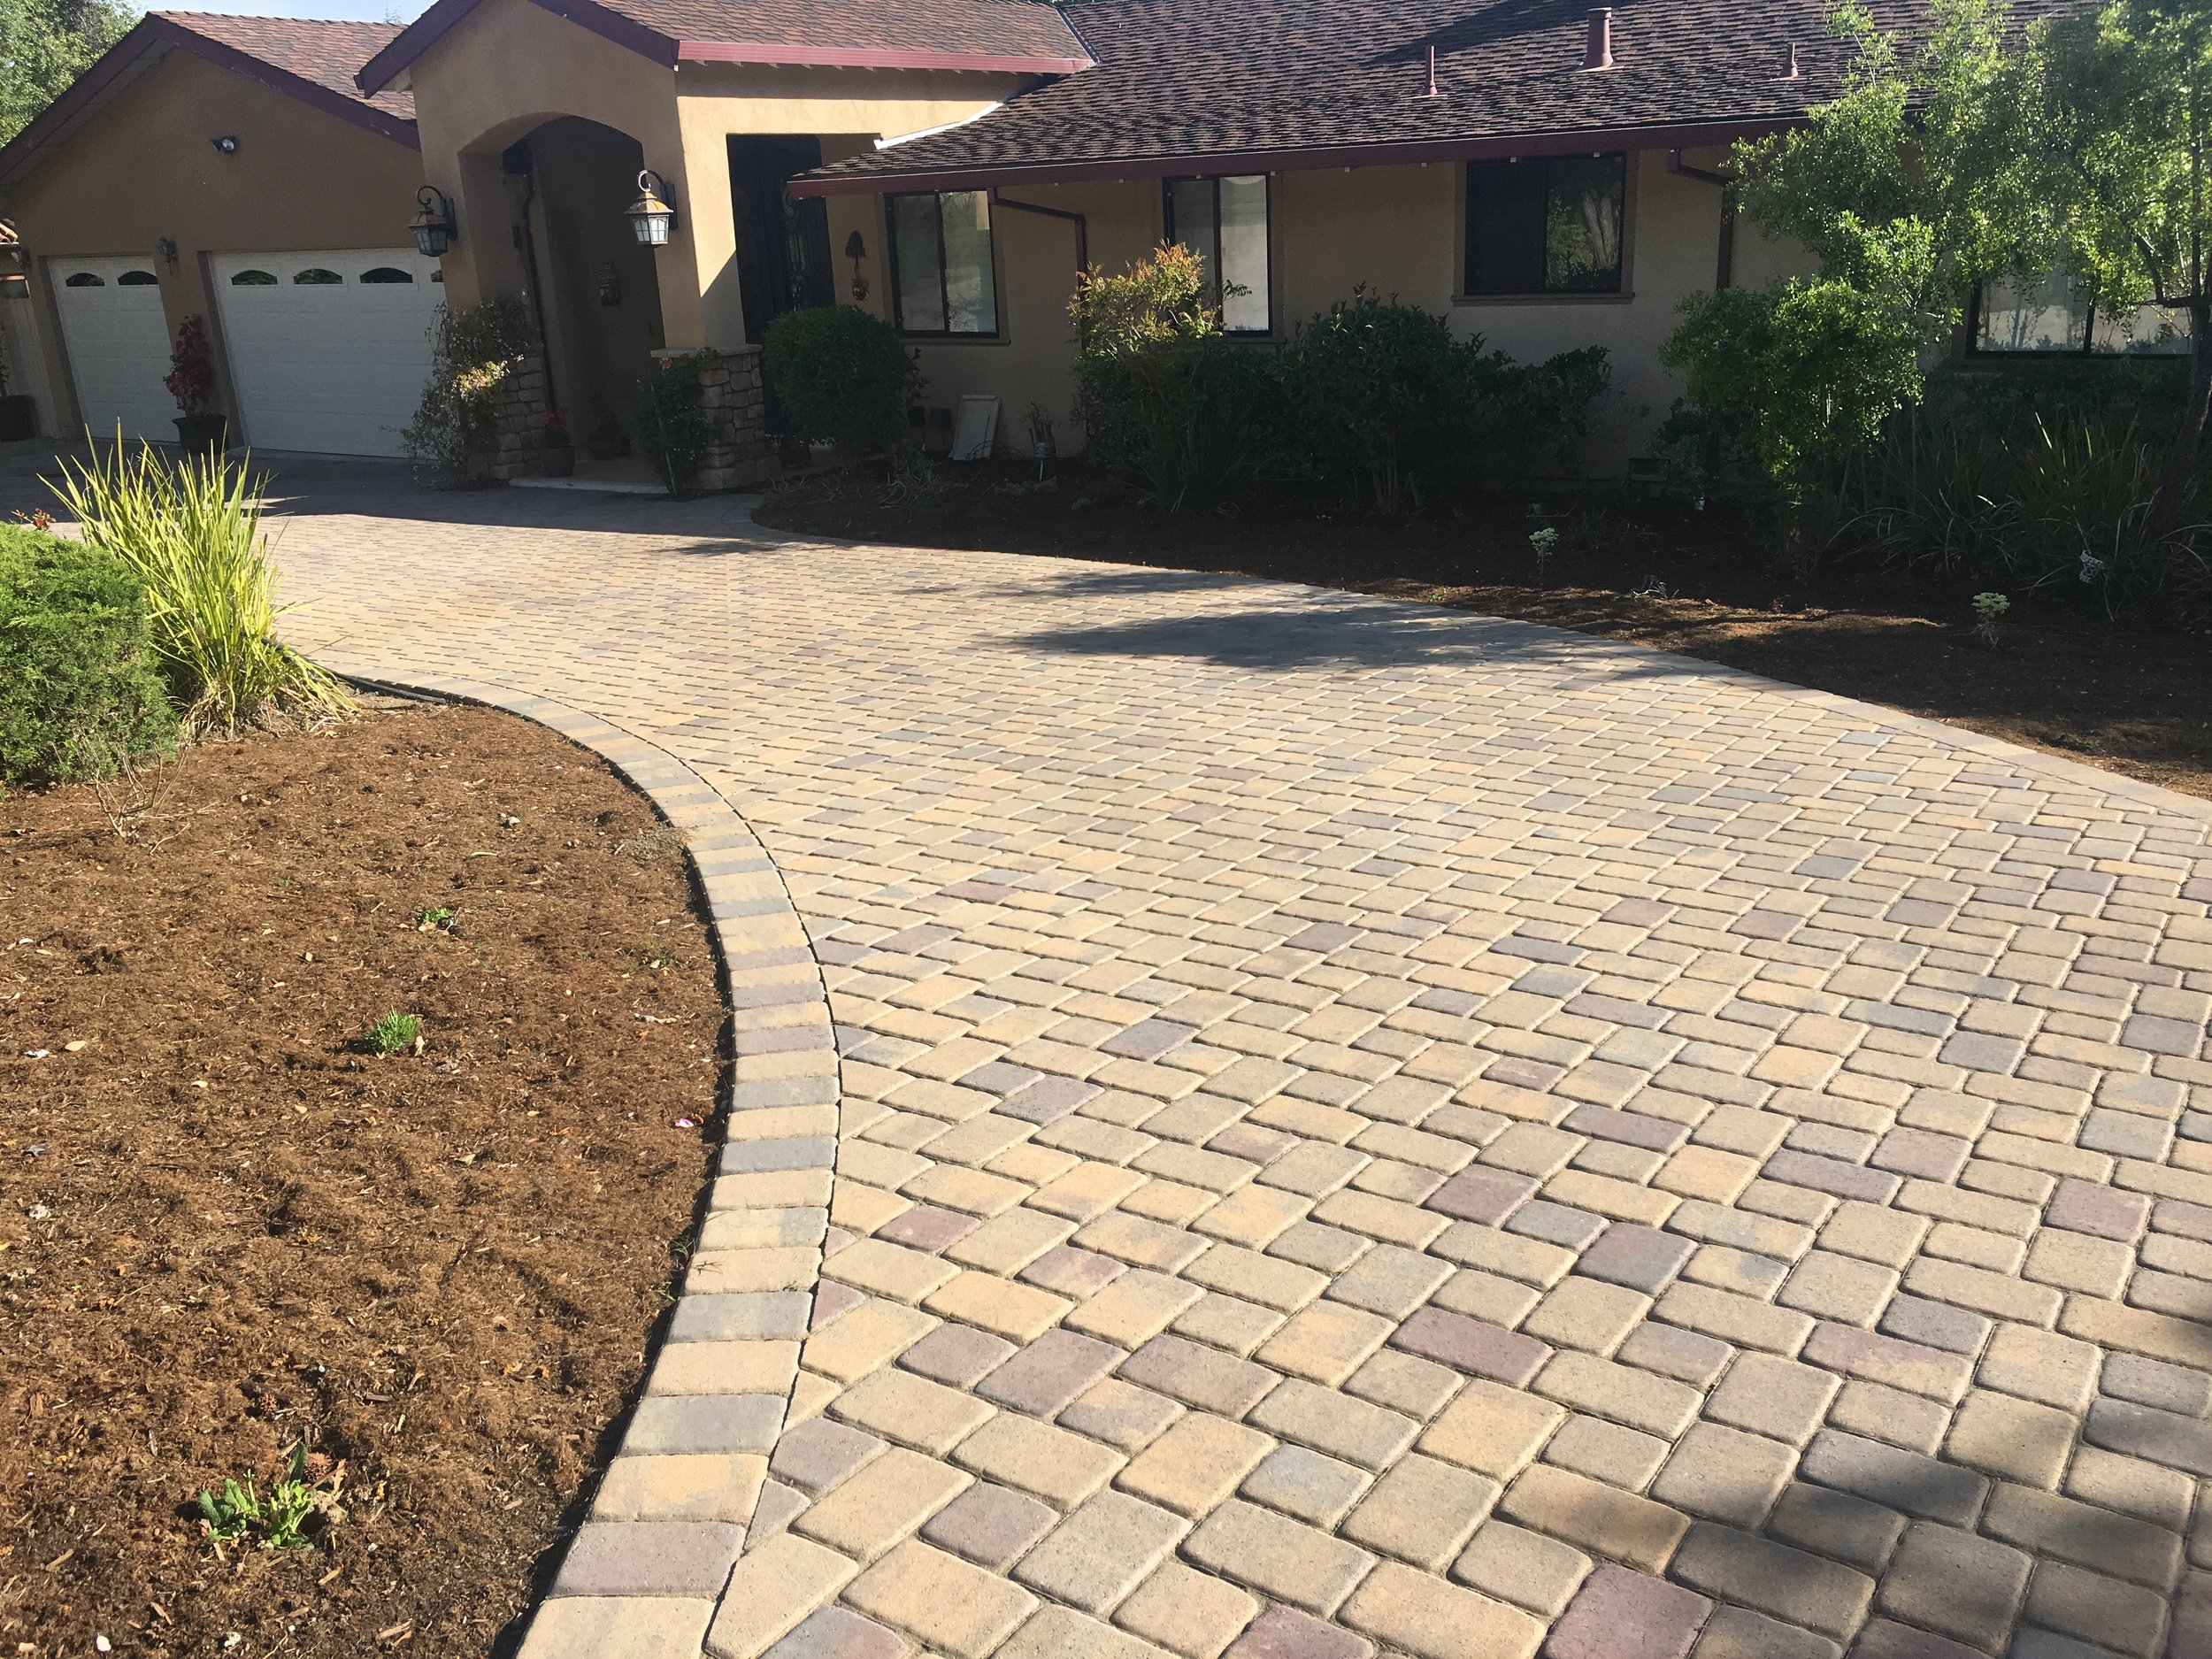 New Belgard Cambridge Cobble Driveway for our wonderful client.